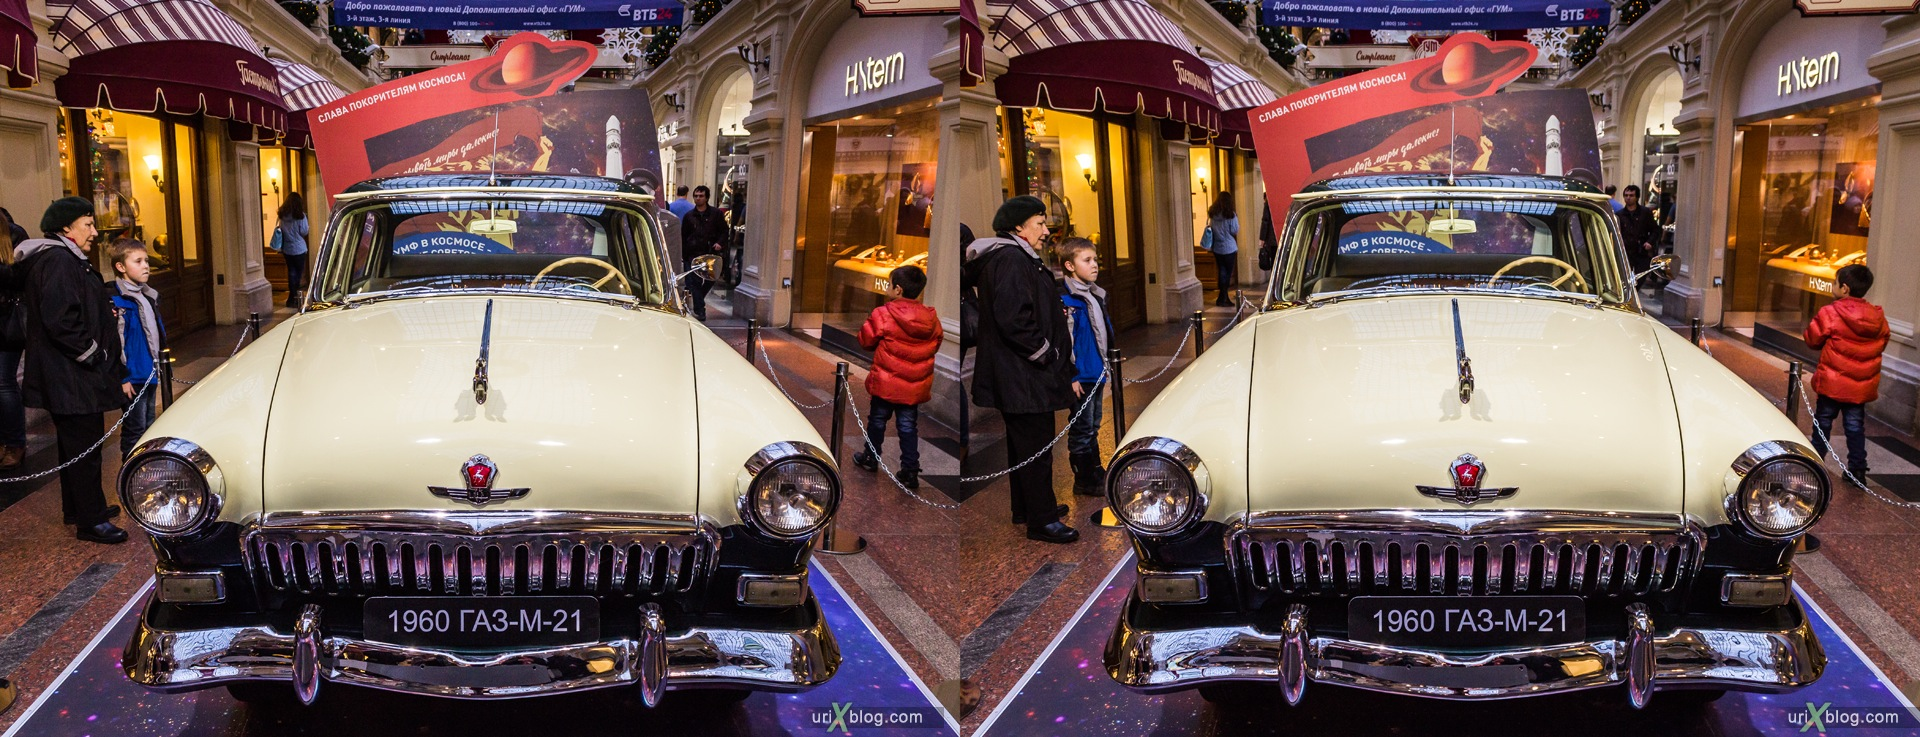 2013, Moscow, Russia, GAZ-M-21, GUM, old, automobile, vehicle, exhibition, shop, mall, 3D, stereo pair, cross-eyed, crossview, cross view stereo pair, stereoscopic